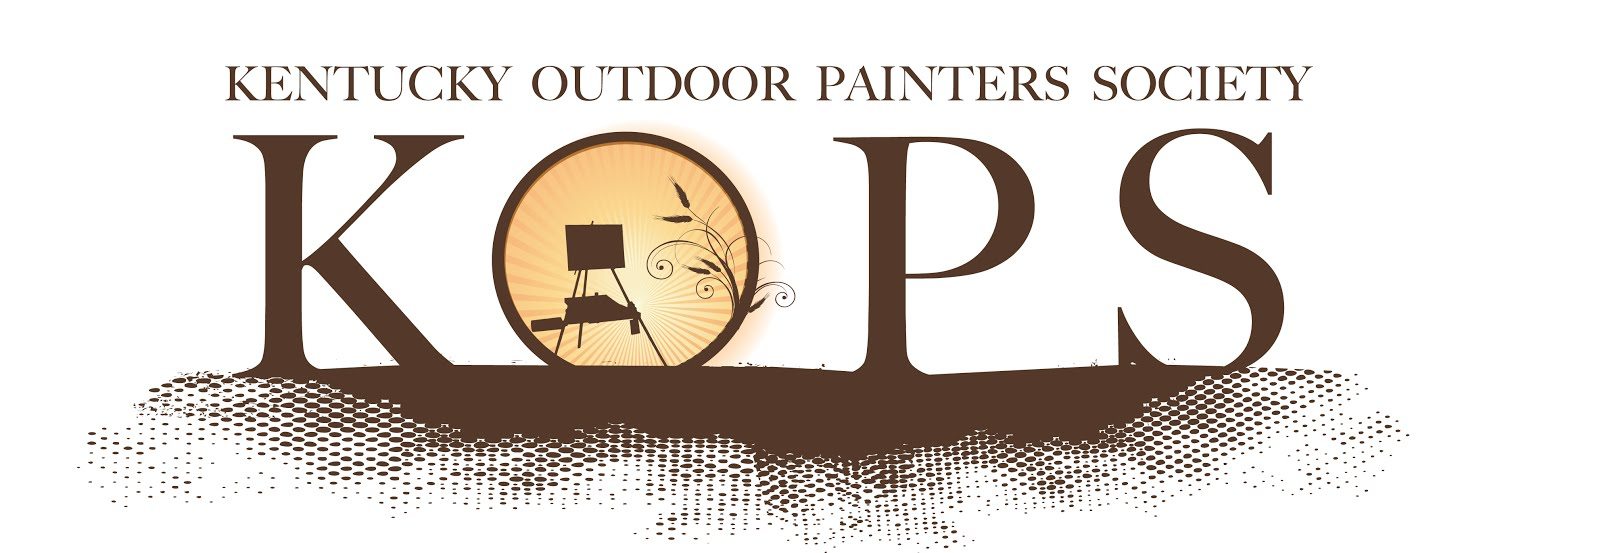 Kentucky Outdoor Painters Society